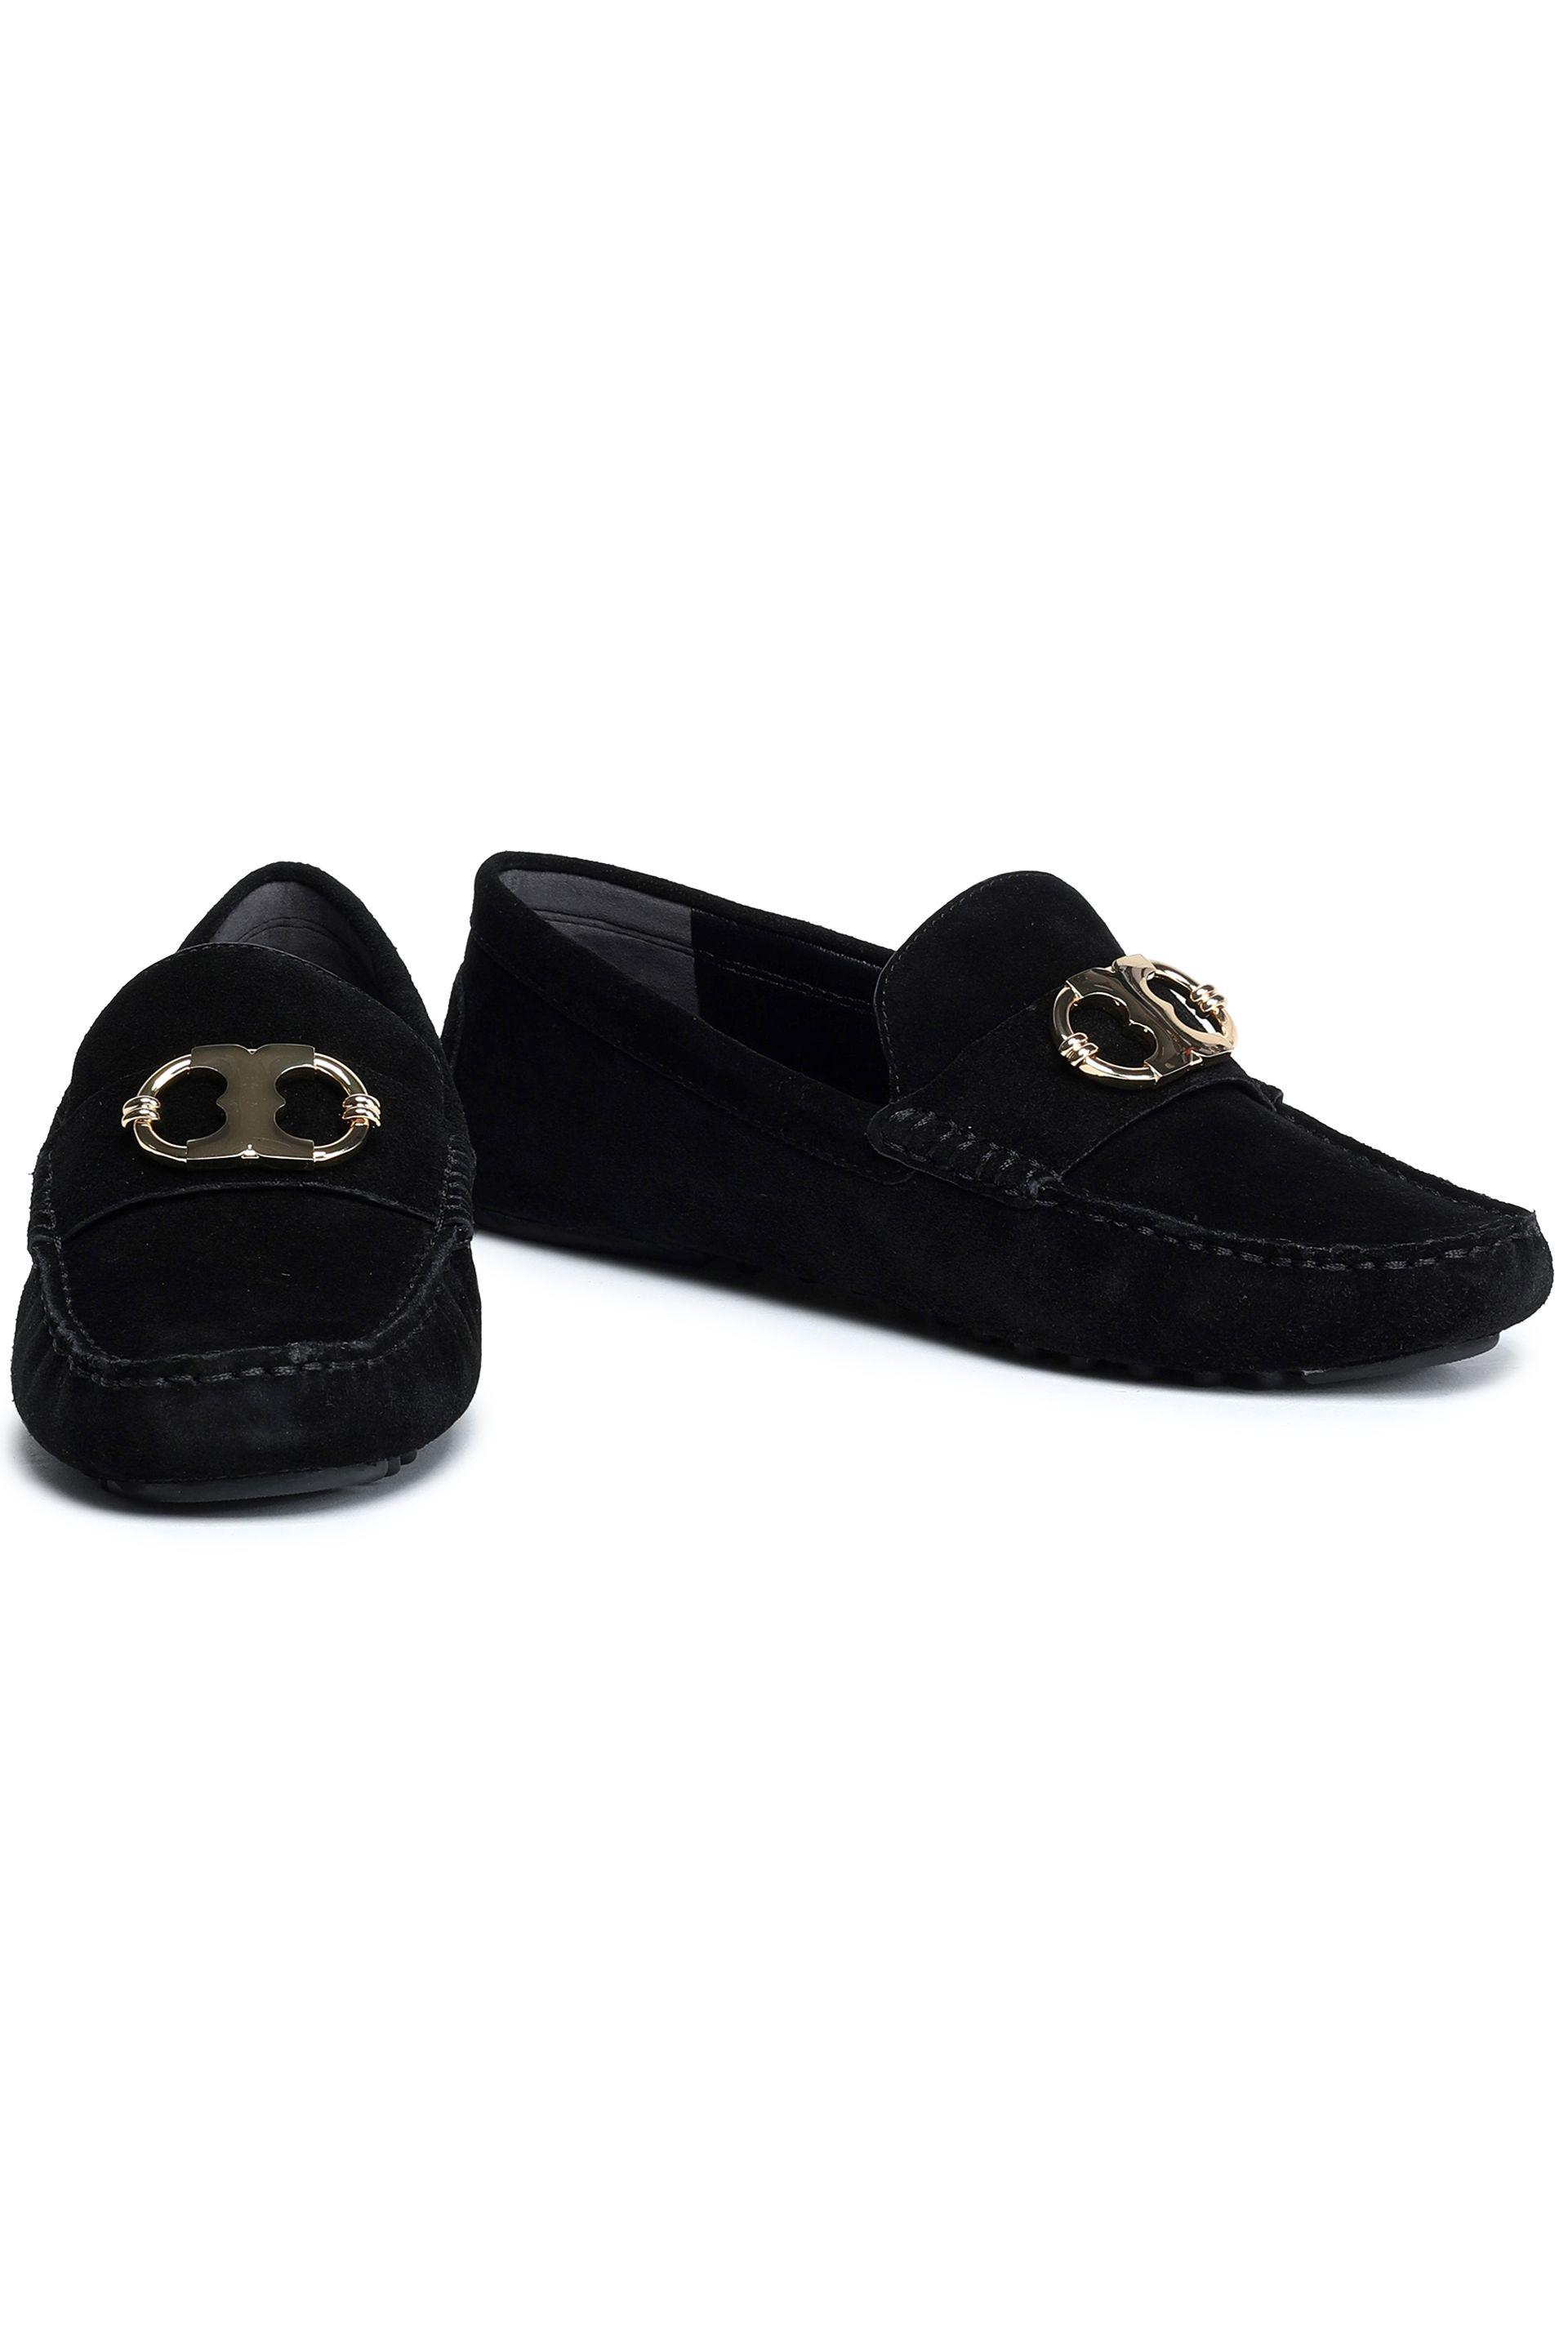 53af64ad1caf Tory Burch - Black Embellished Suede Loafers - Lyst. View fullscreen